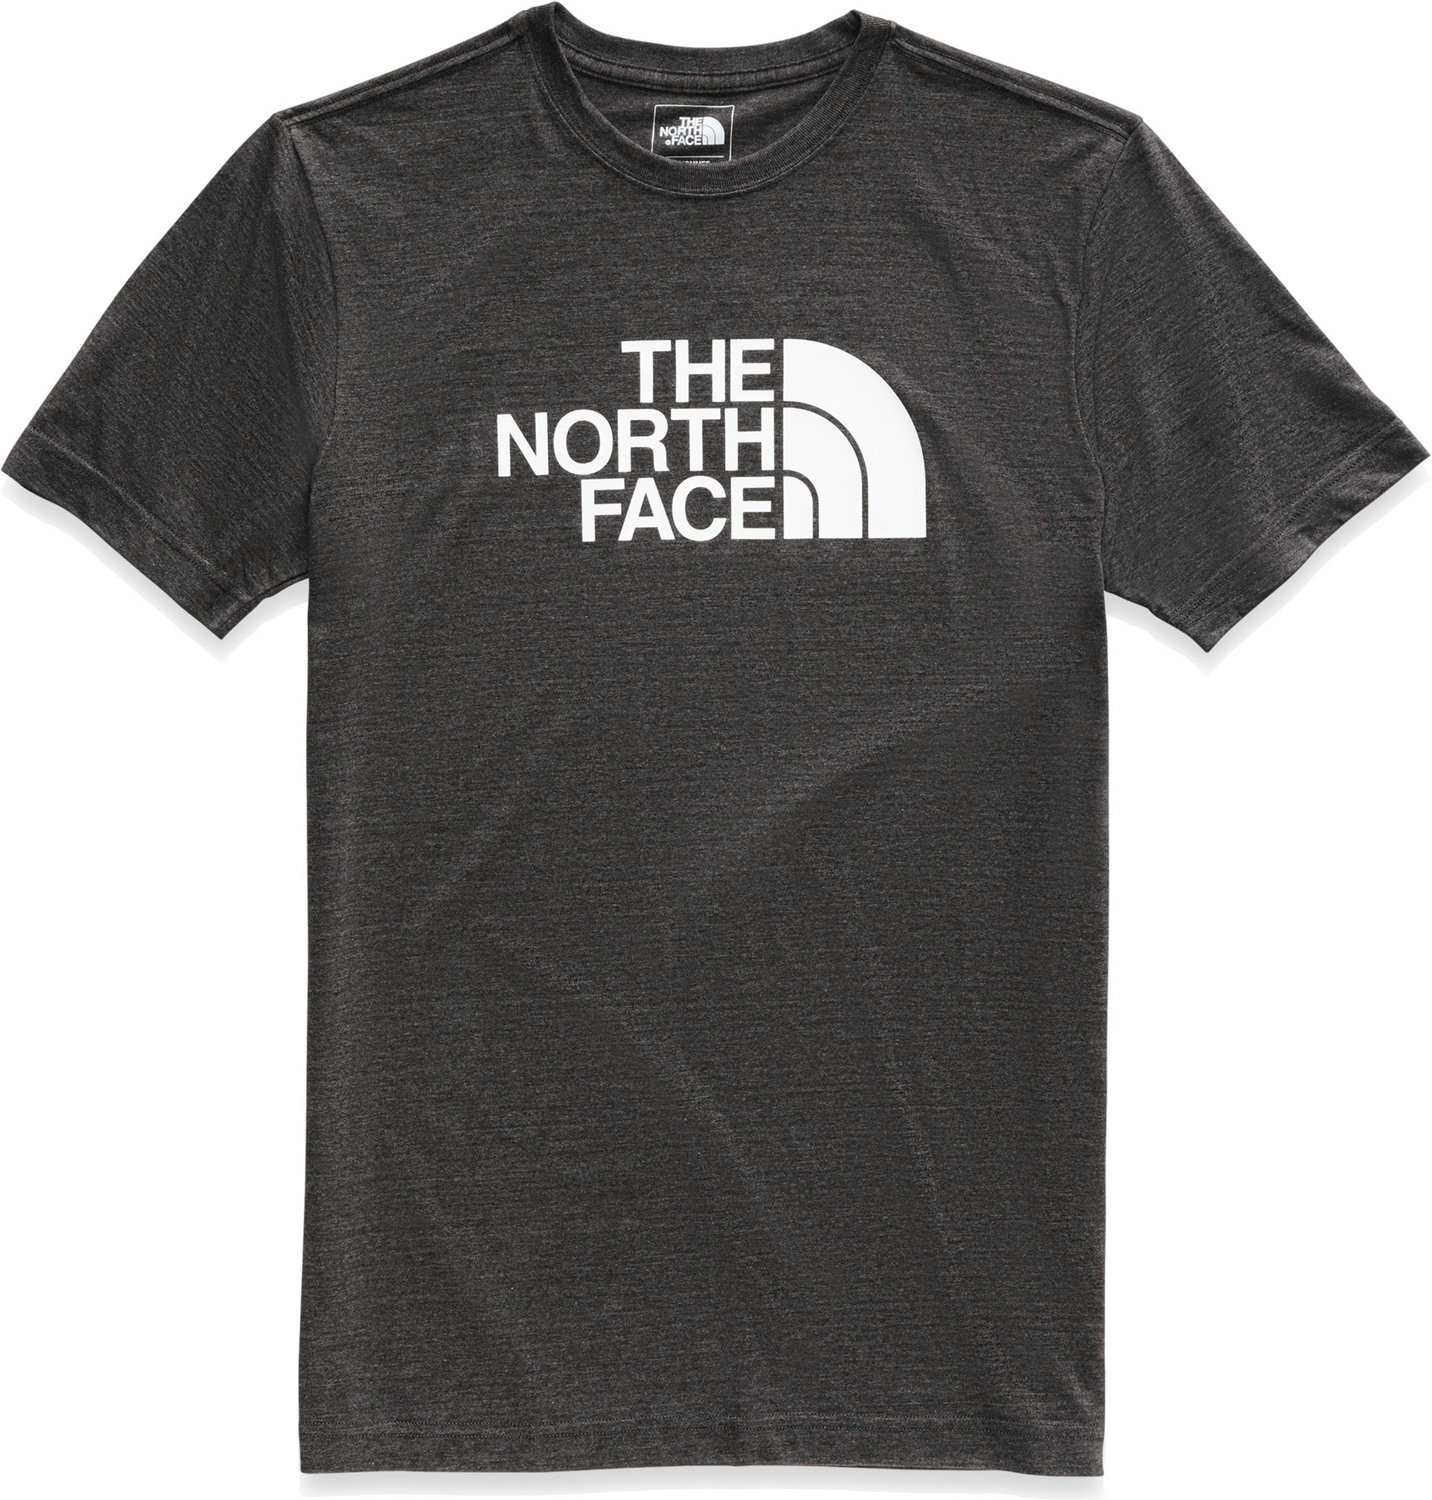 42165e8a5 Display product reviews for The North Face Men's Half Dome Triblend Short  Sleeve T-shirt